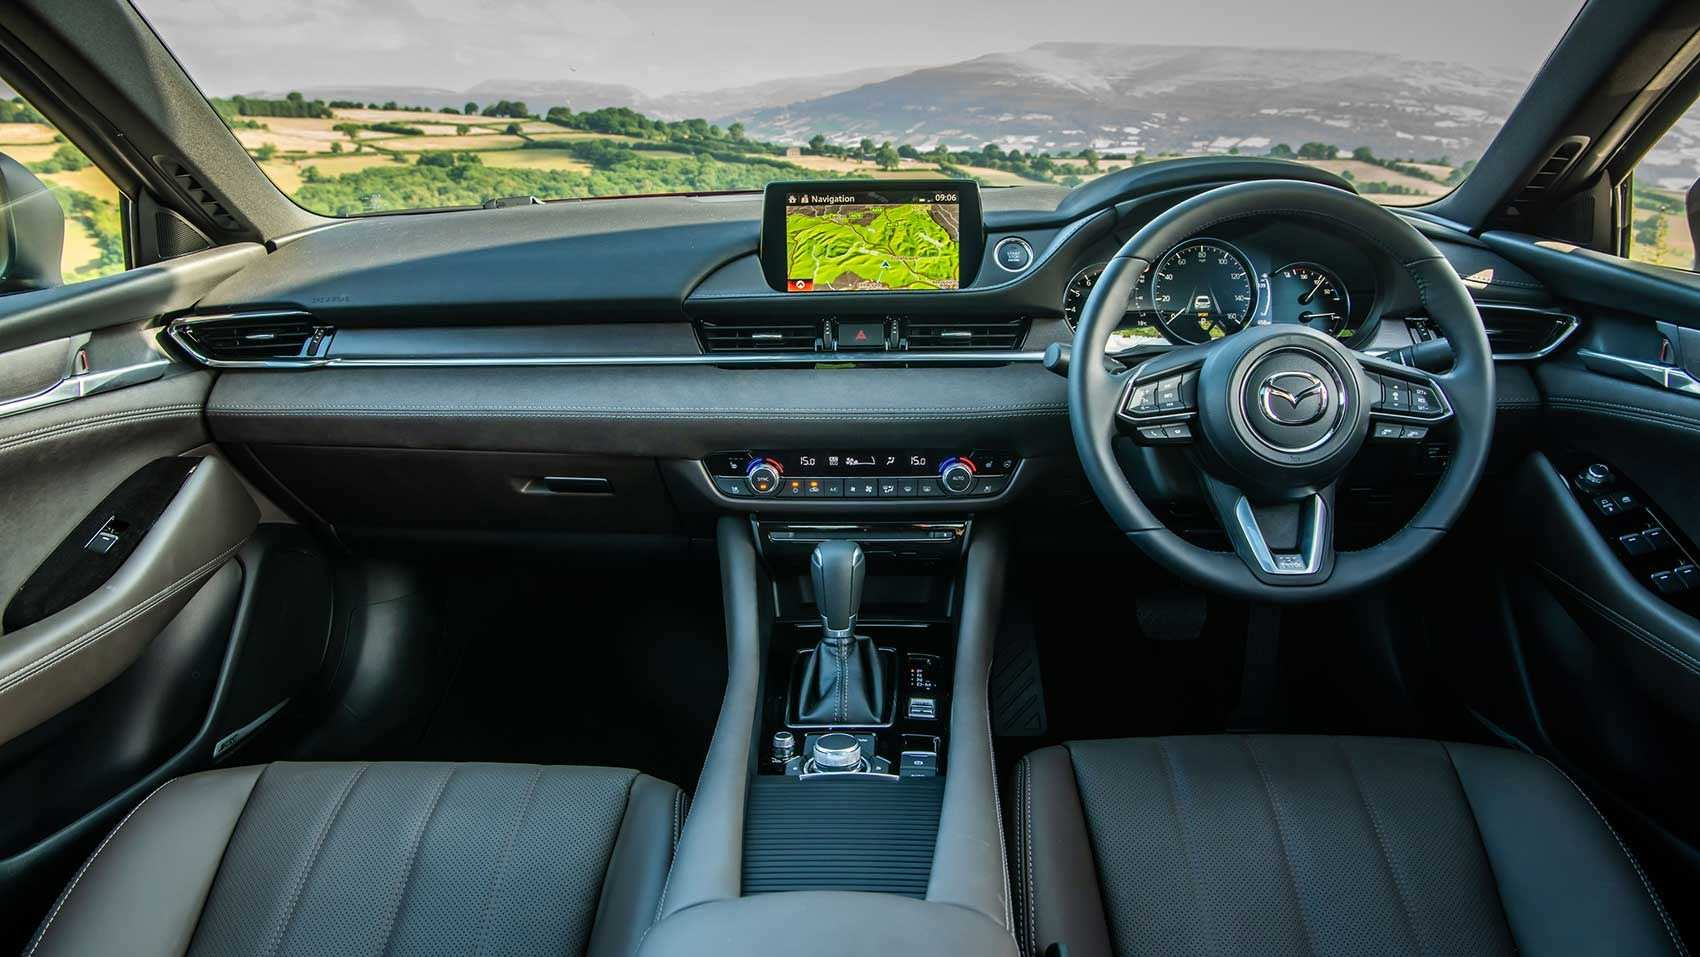 45 All New New Mazda 6 2019 Uk Overview Pictures with New Mazda 6 2019 Uk Overview